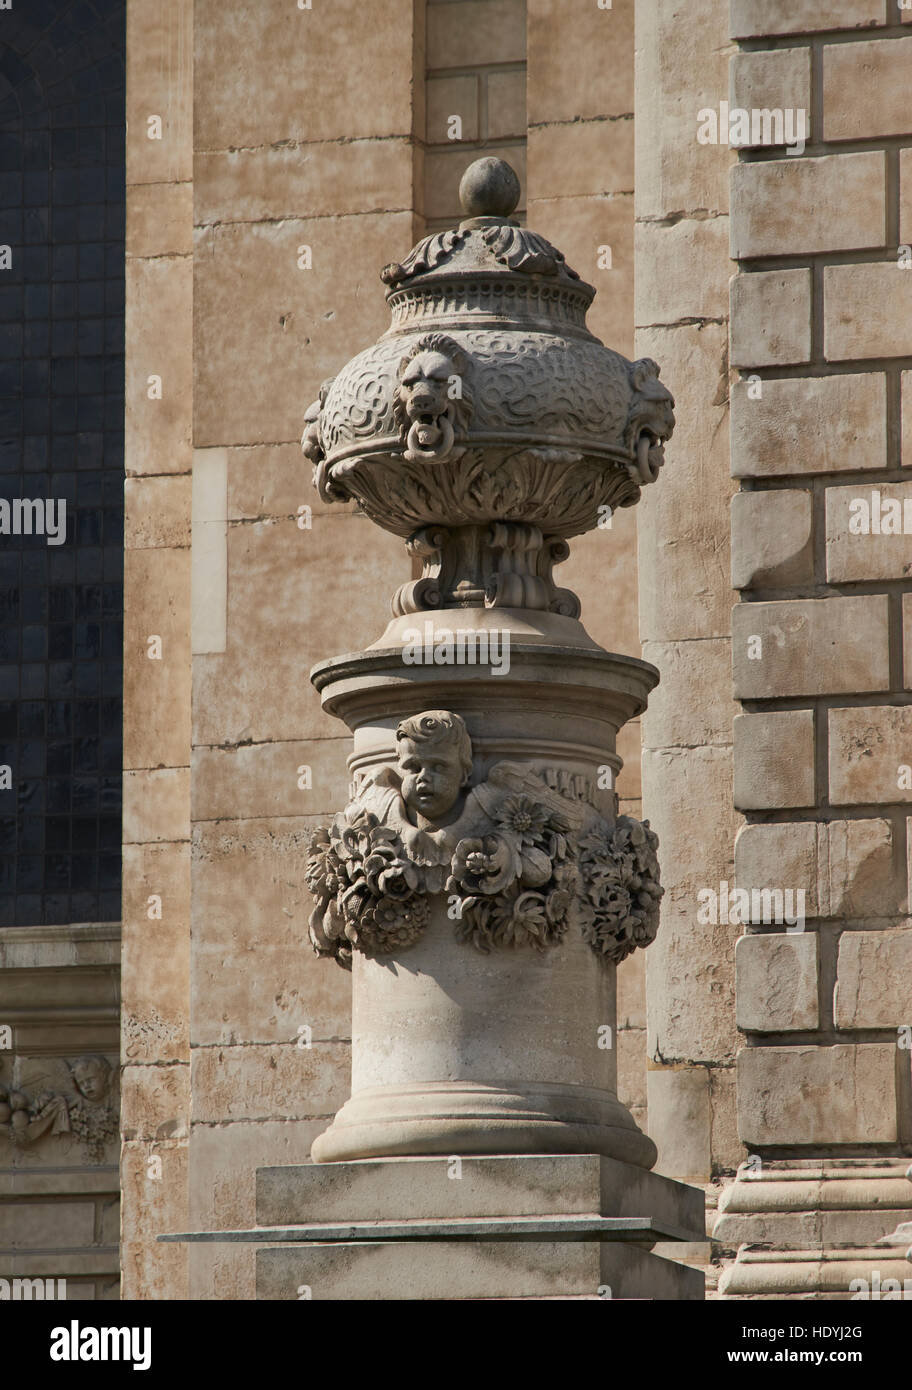 Urn and cherub on gateway on south portico, by Grinling Gibbons  St Paul's Cathedral, London. Late 17th century. - Stock Image